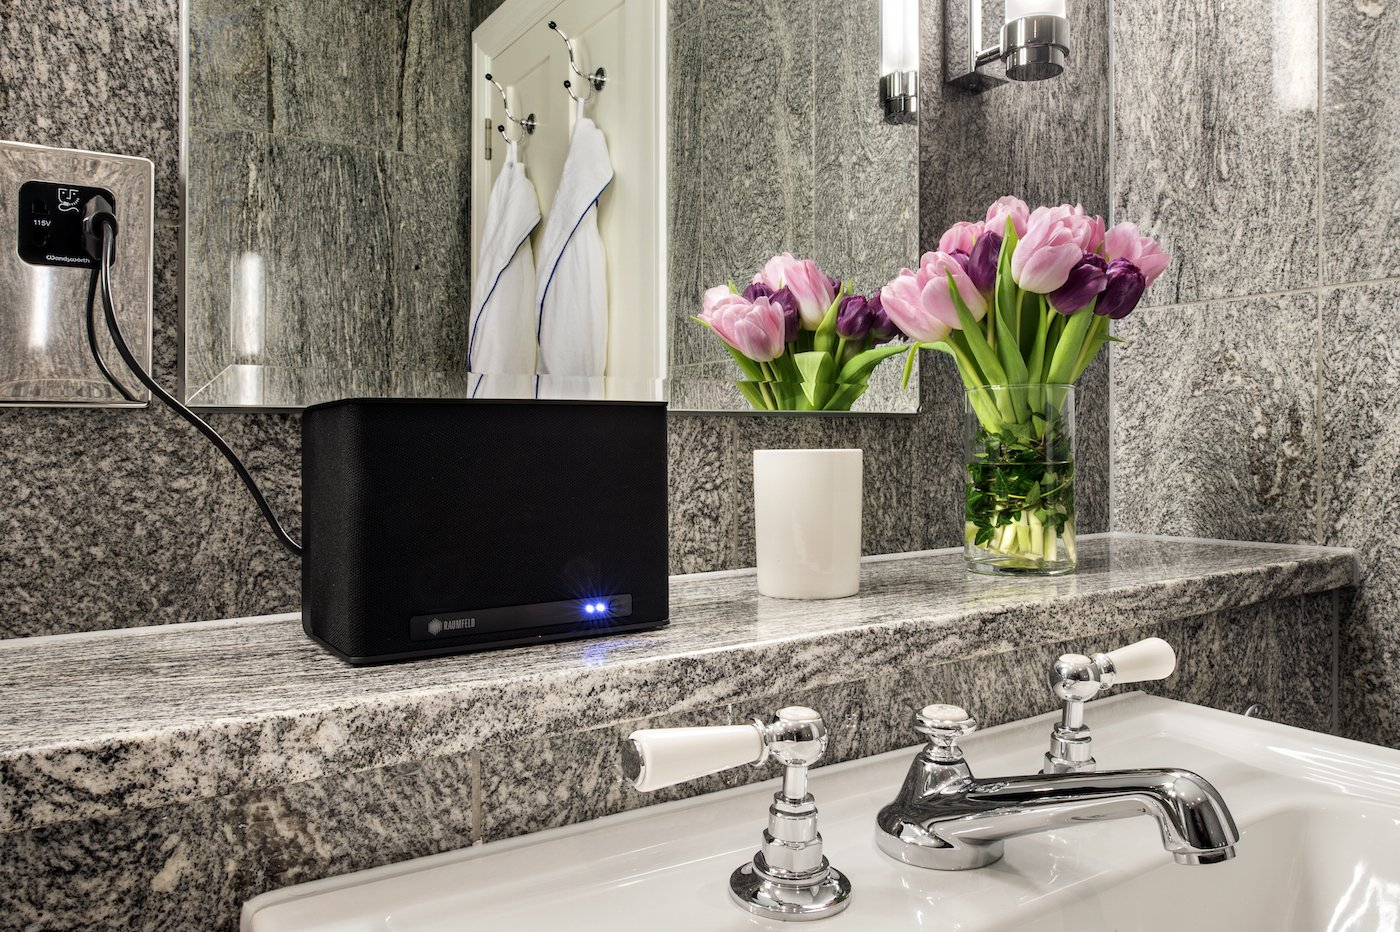 Raumfeld wireless speakers at the Terrace Suite at the Ham Yard Hotel, London. W1D 7DT. 20 February 2015